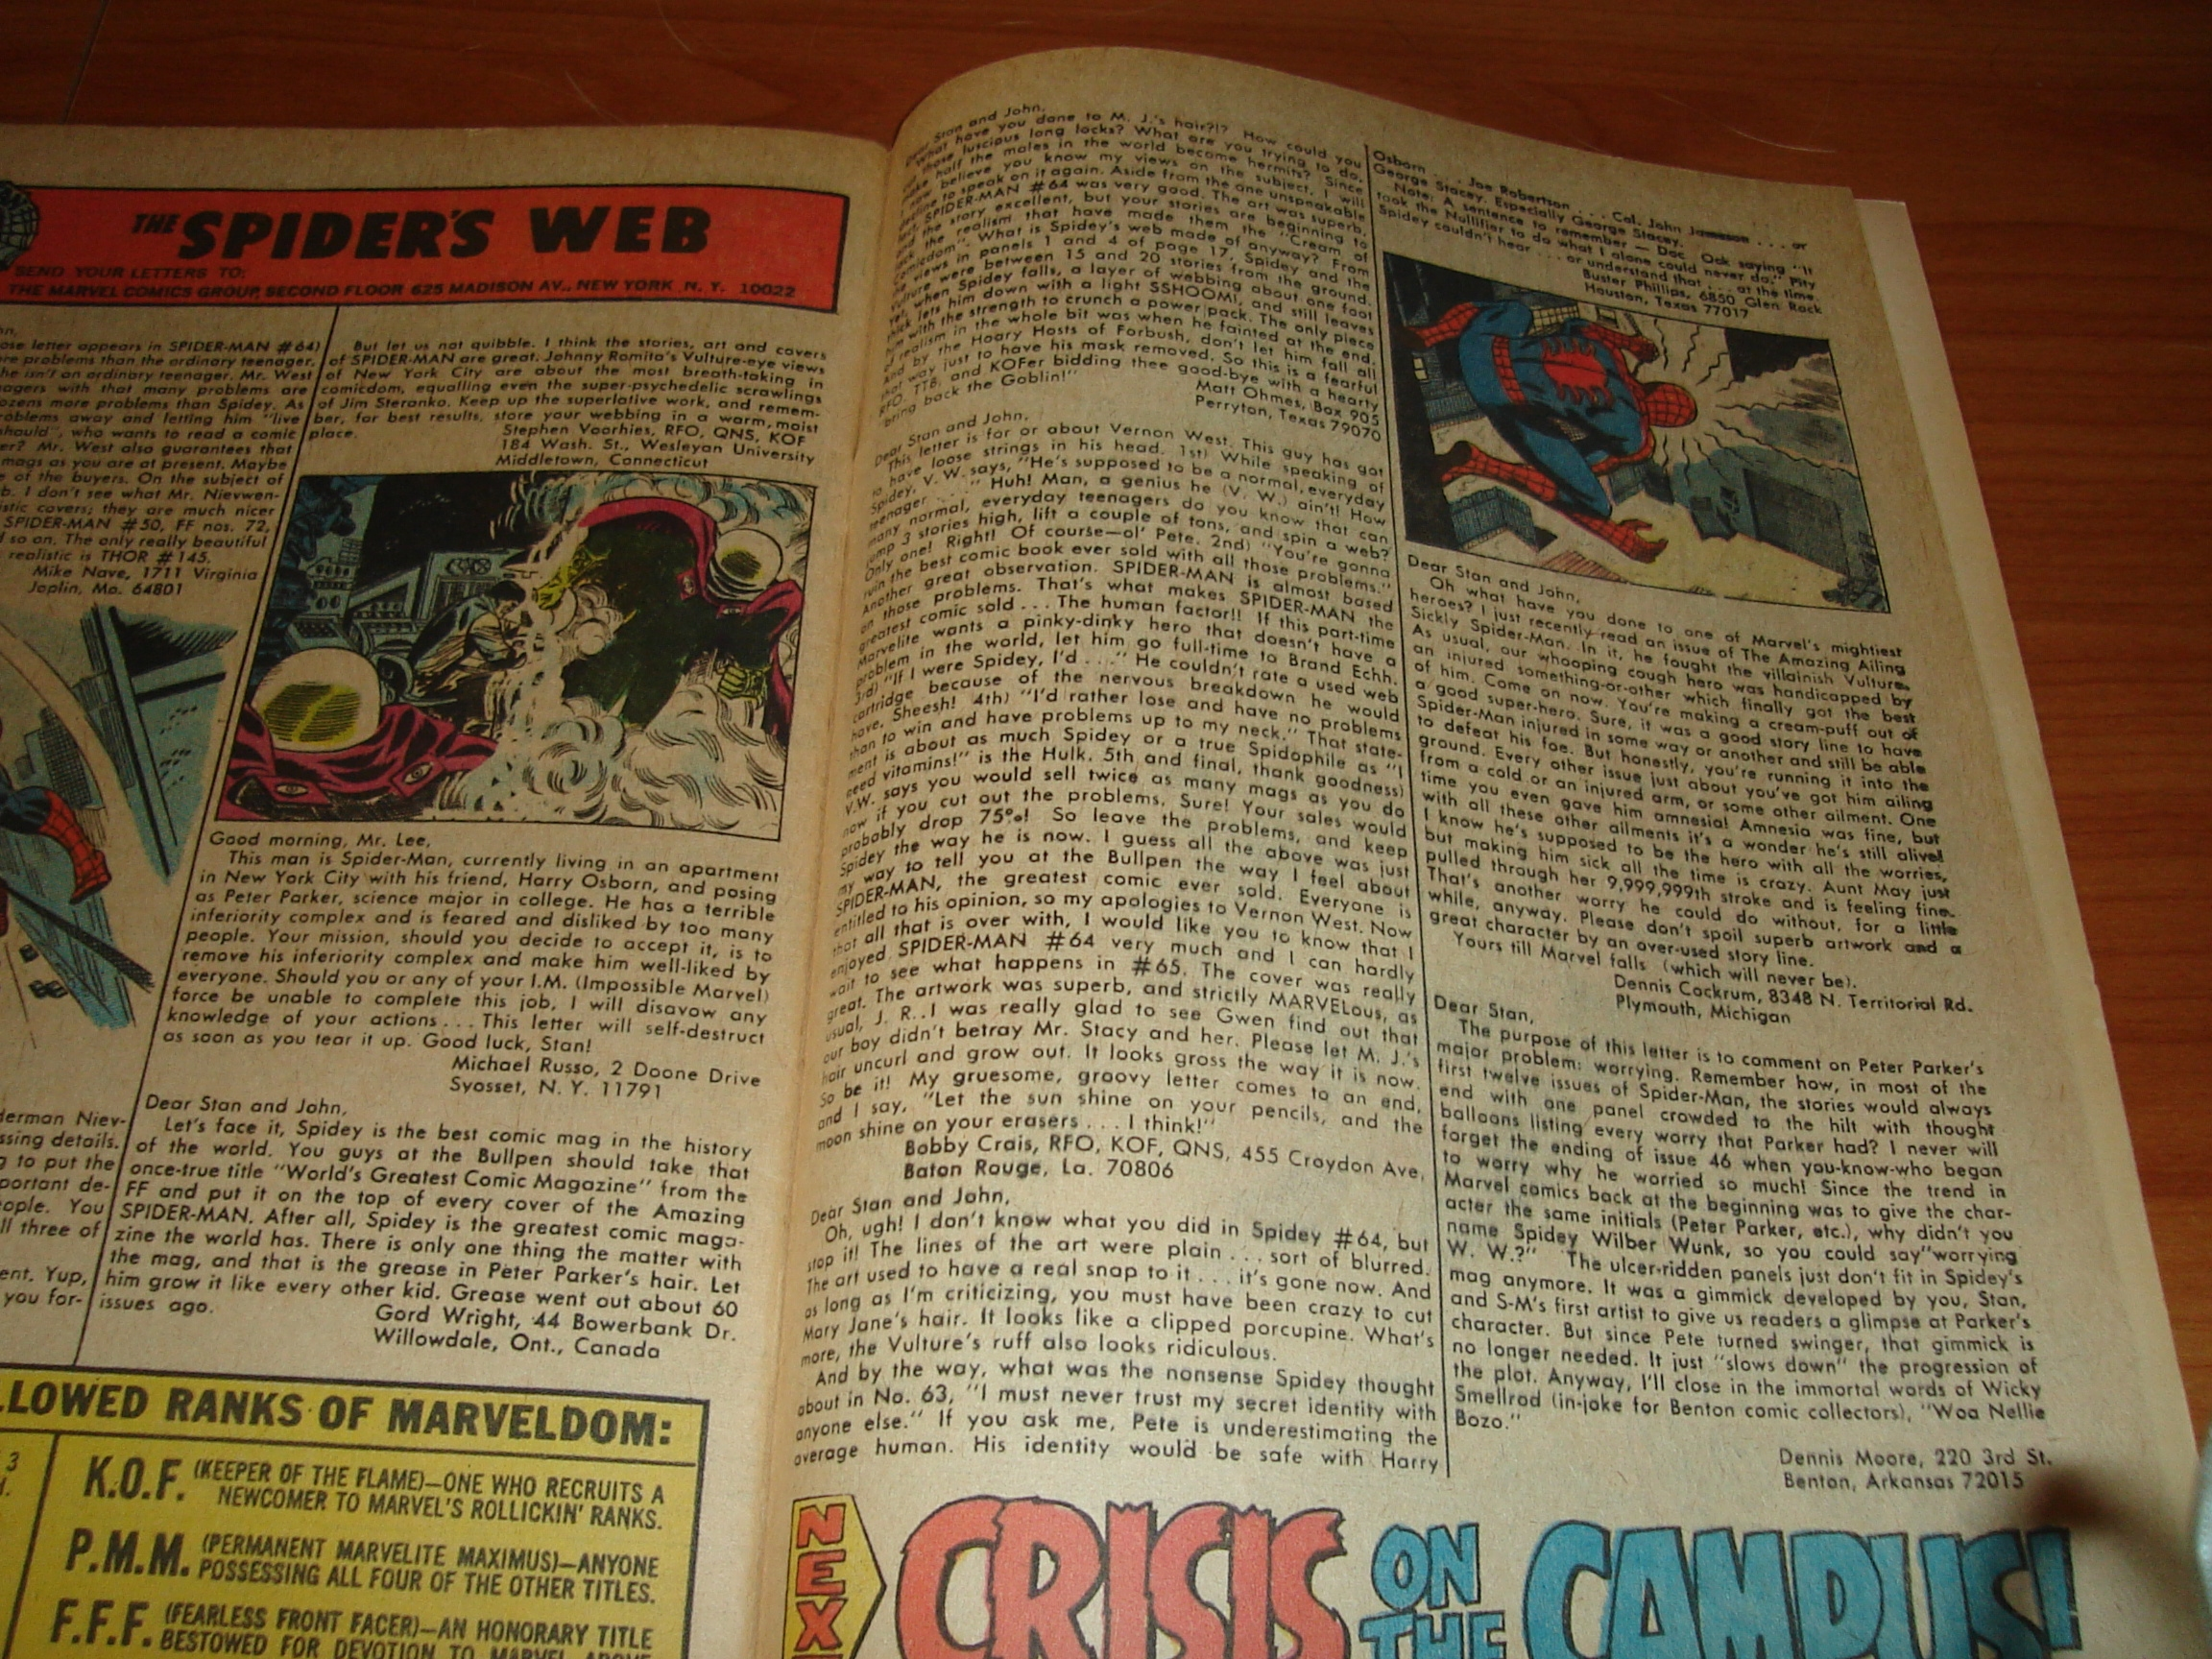 Letter from Robert Crais in Amazing Spider-Man 67